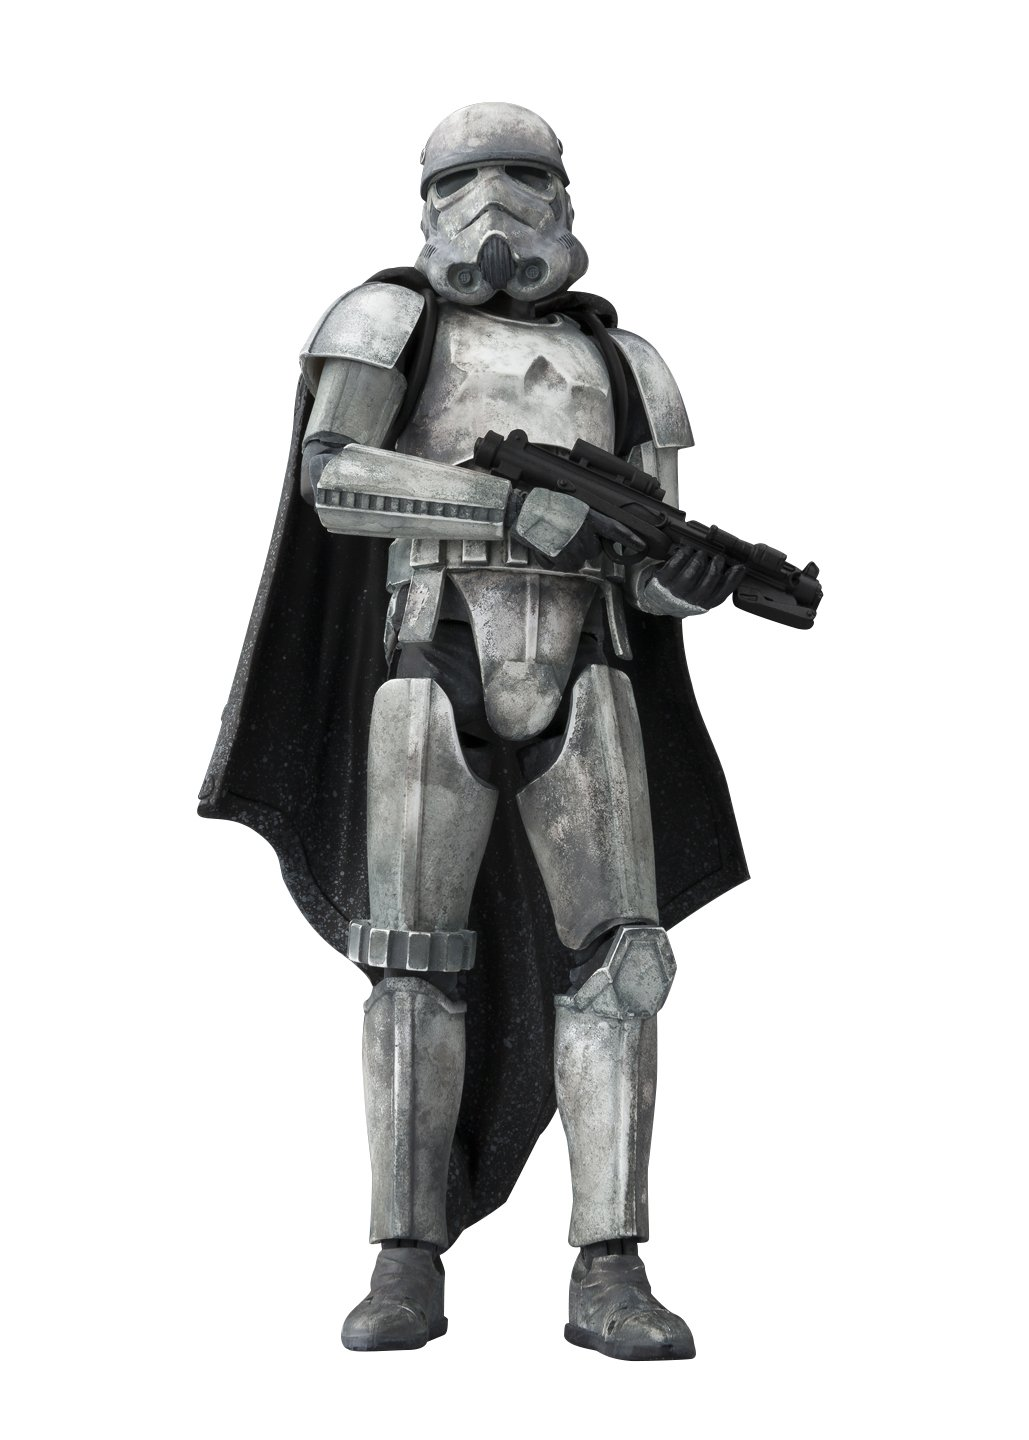 Bandai Hobby S.H.Figuarts MINBAN Storm Trooper Han Solo / Star Wars Story